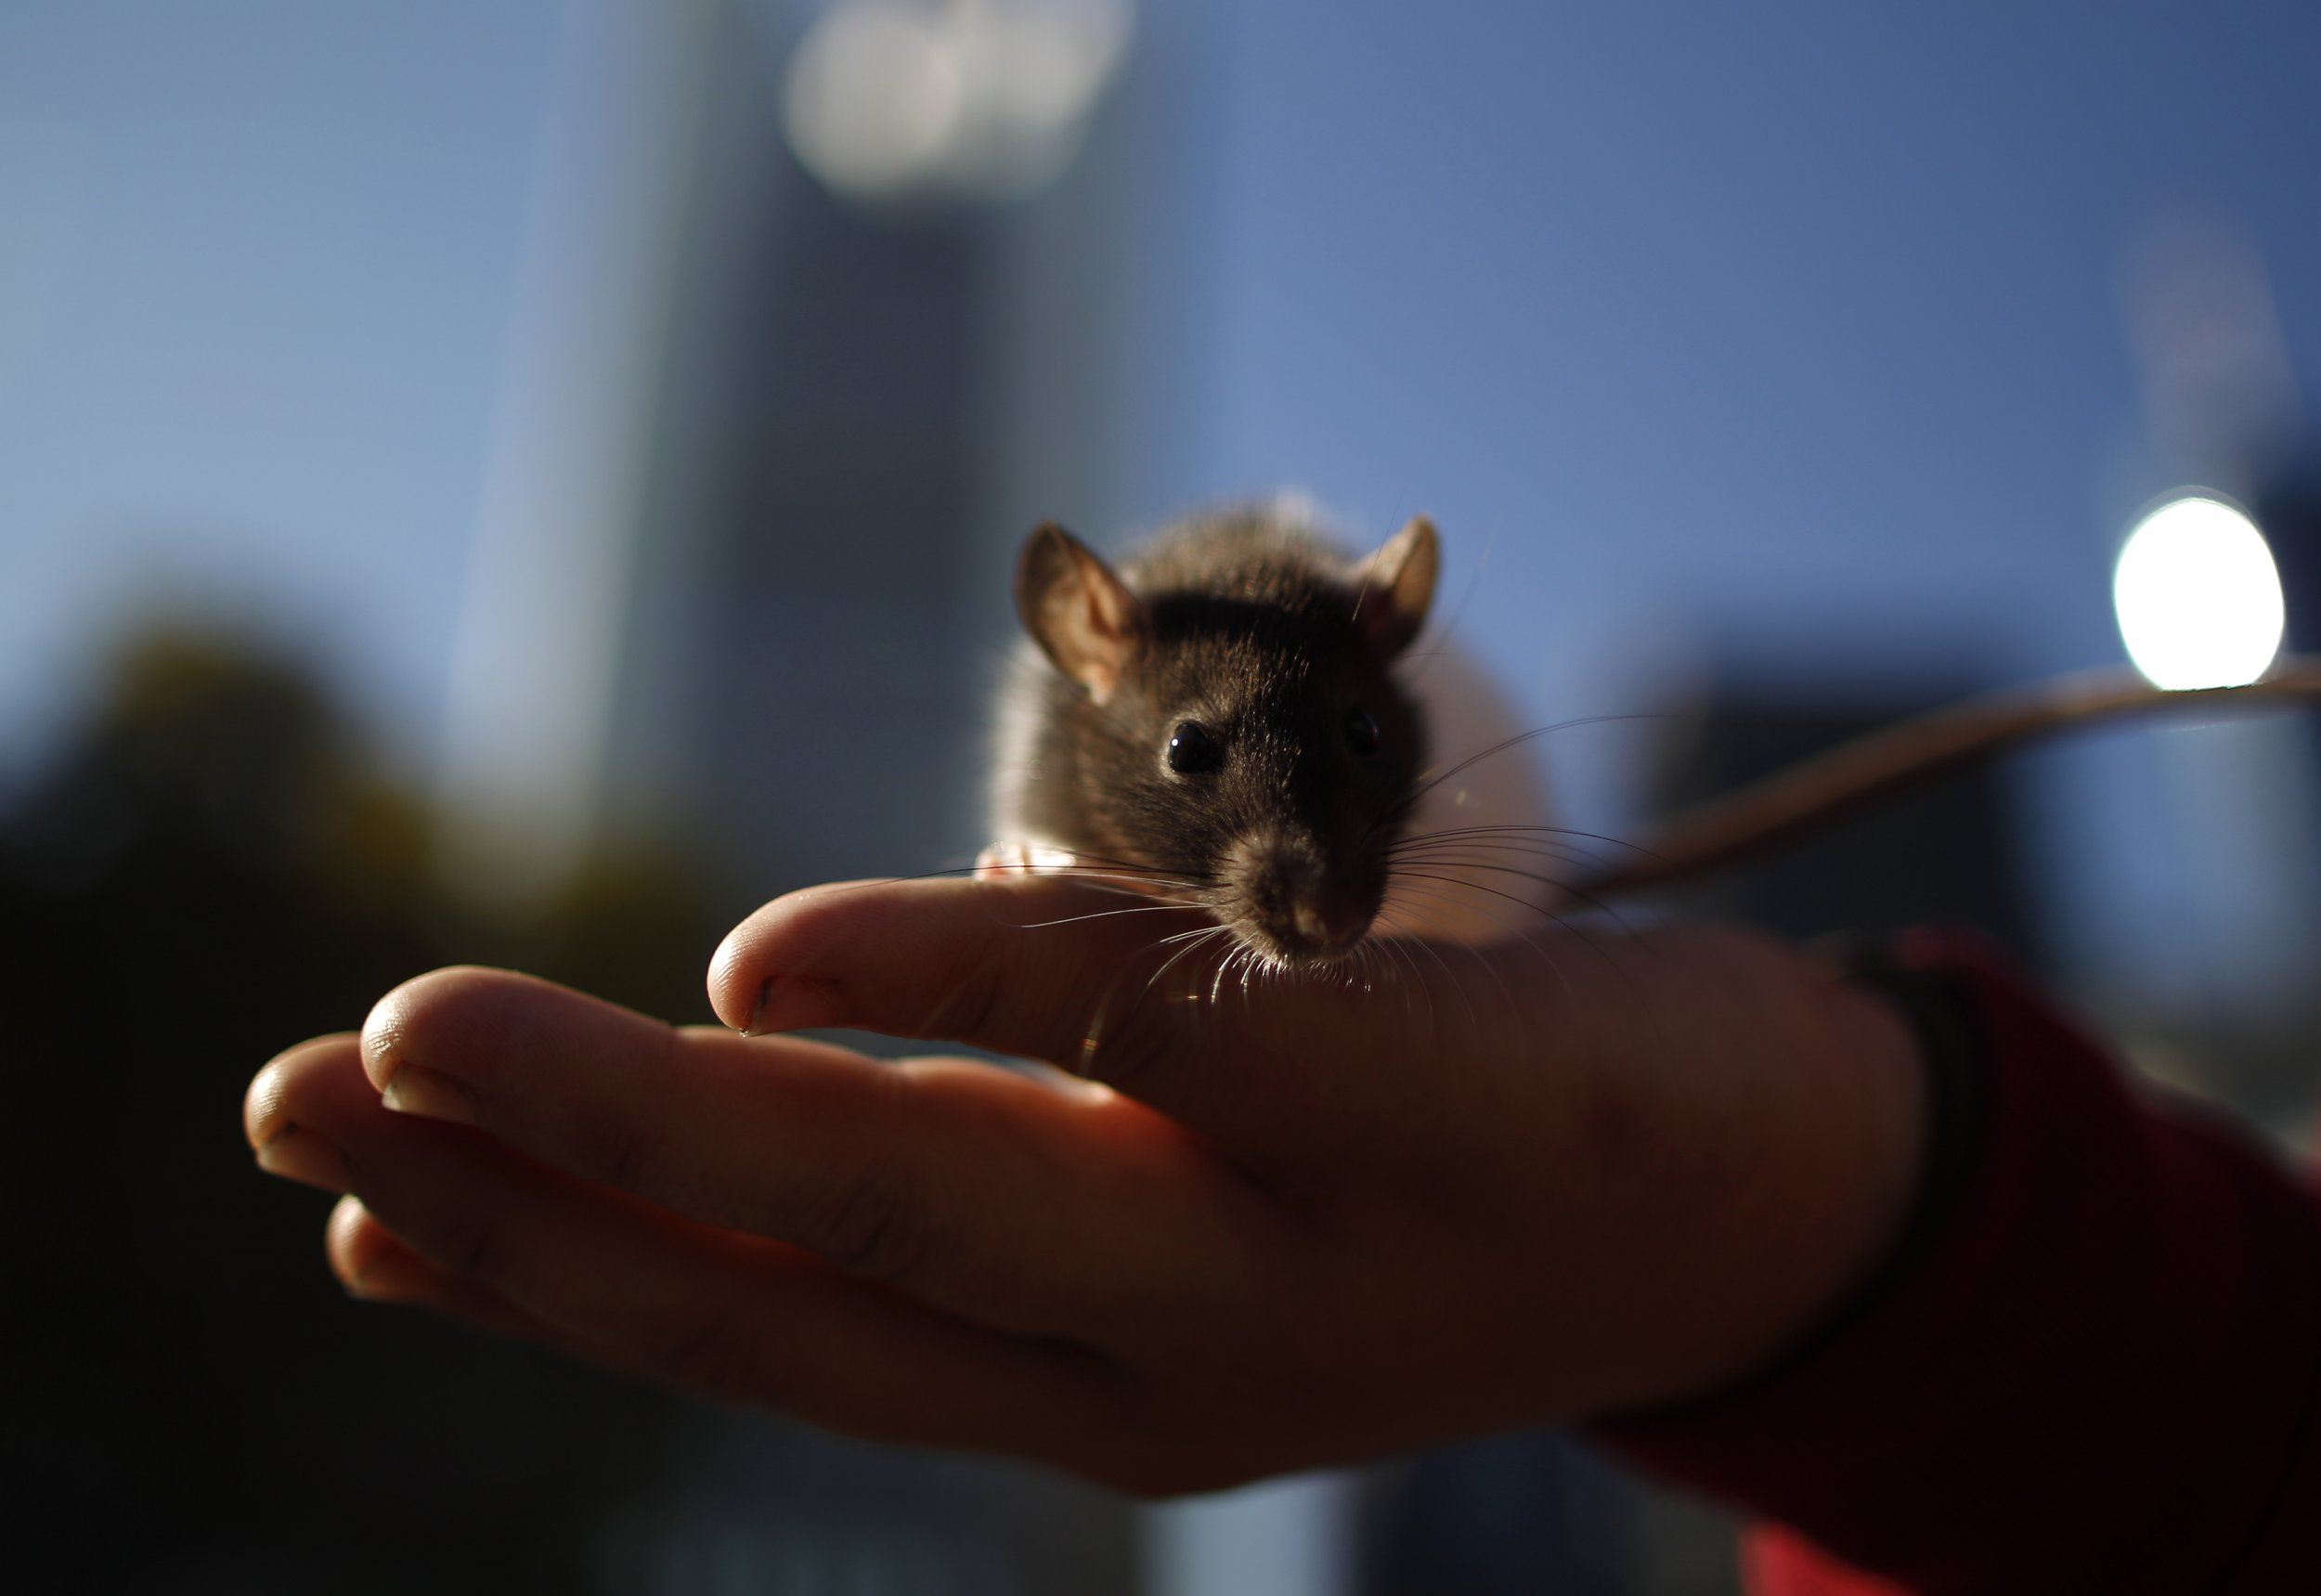 Tiny Bits of Human Brain Implanted Into Rats Raises Huge Ethical Debate